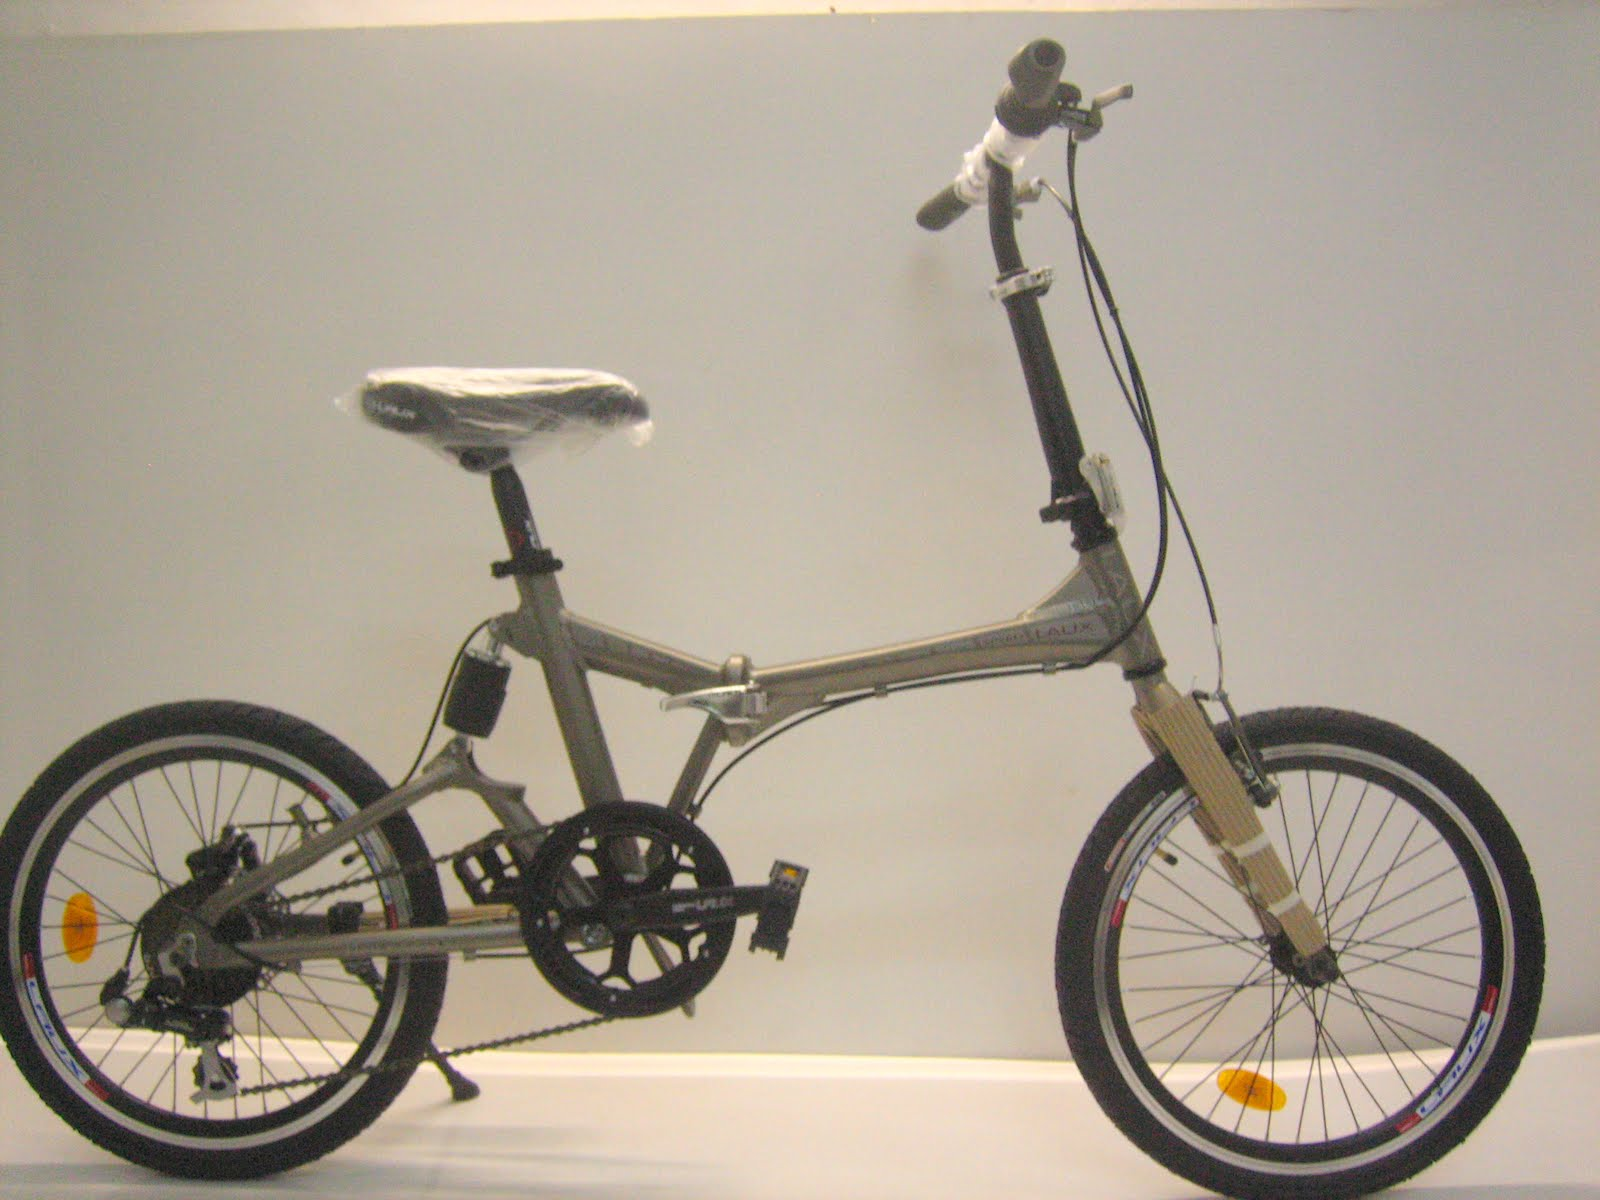 Top Bicycle 2011 Sifter Spd Lipat Shimano 7 Speed Sl Tx 30 Global Warming Is An Emerging Environmental Issues Discussed At This Time One Of The Causes Air Pollution Due To Emissions Motor